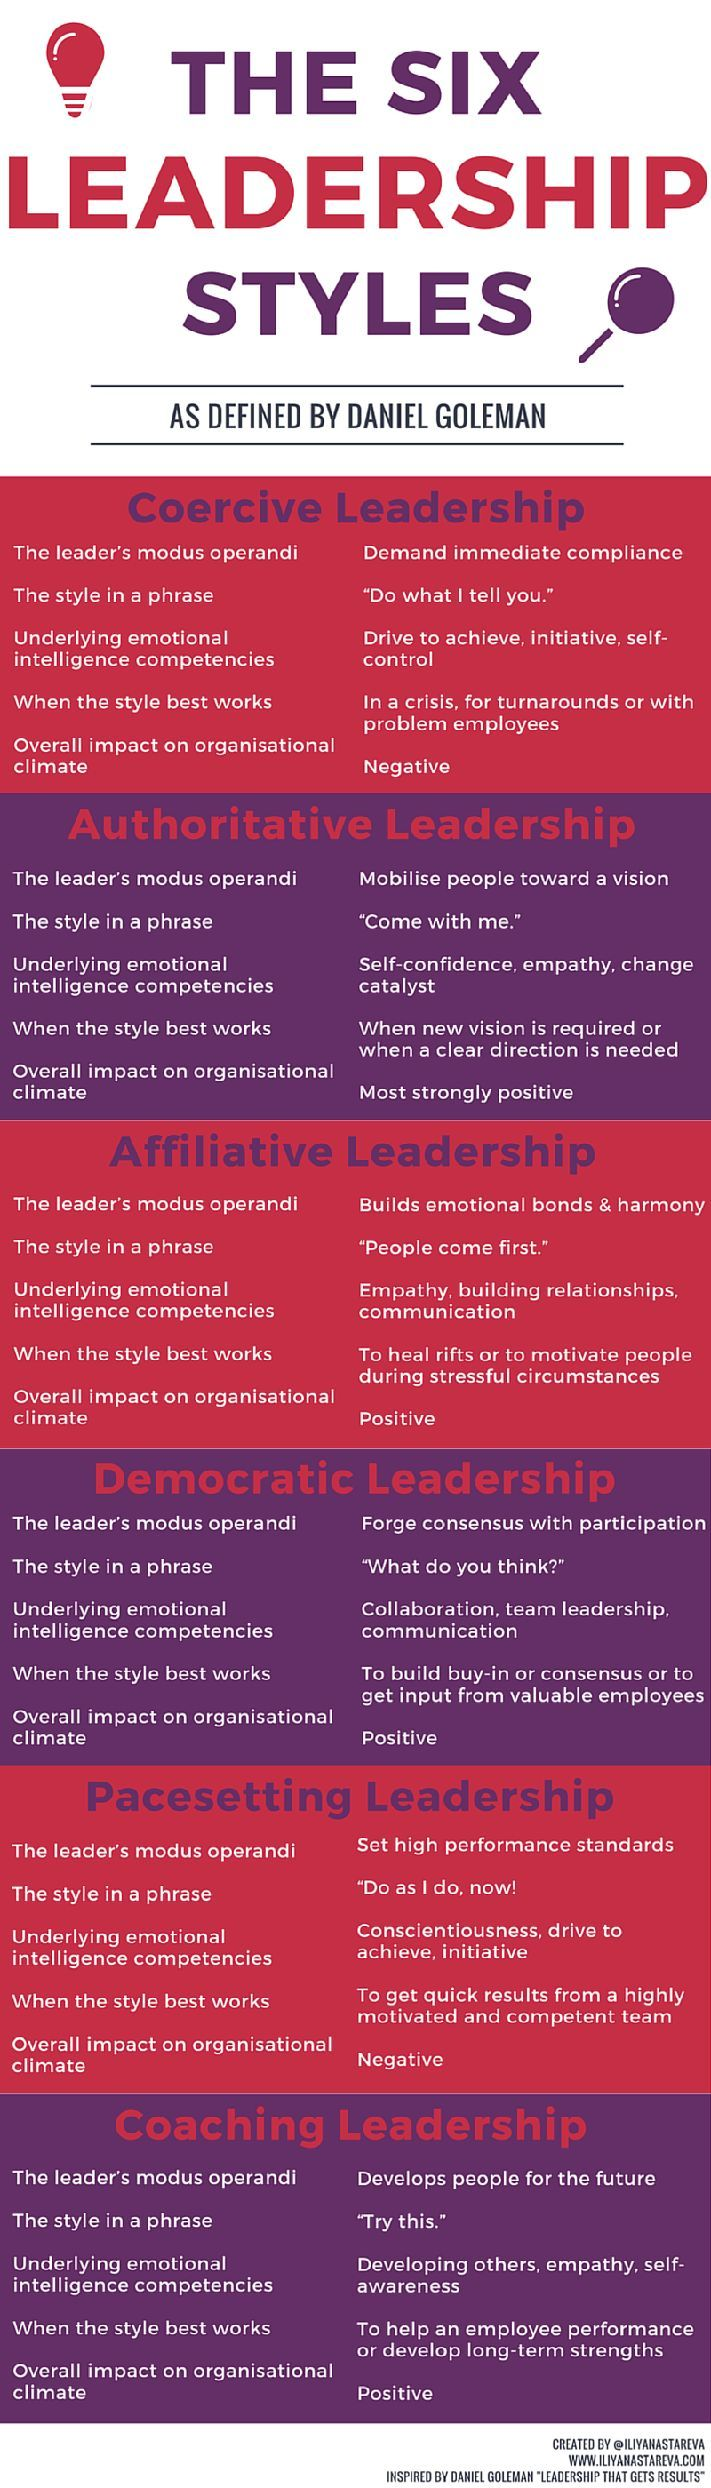 The Six #Leadership Styles #Infographic. If you like UX, design, or design thinking, check out theuxblog.com